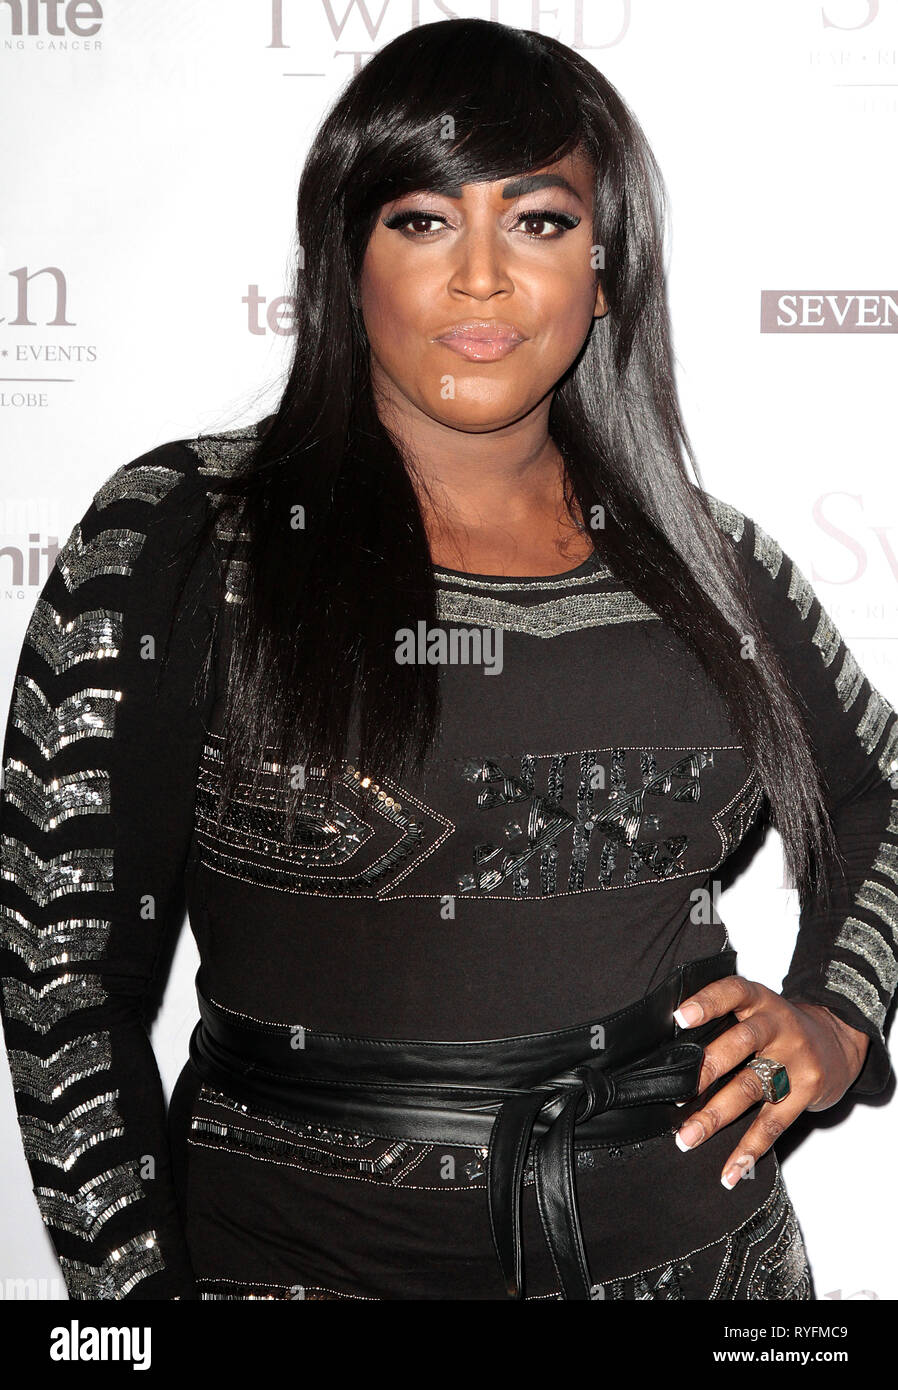 Nov 22, 2014 - London, England, UK - Teens Unite: A Twisted Tale Charity Ball at The UnderGlobe, Southbank Photo Shows: Mica Paris - Stock Image